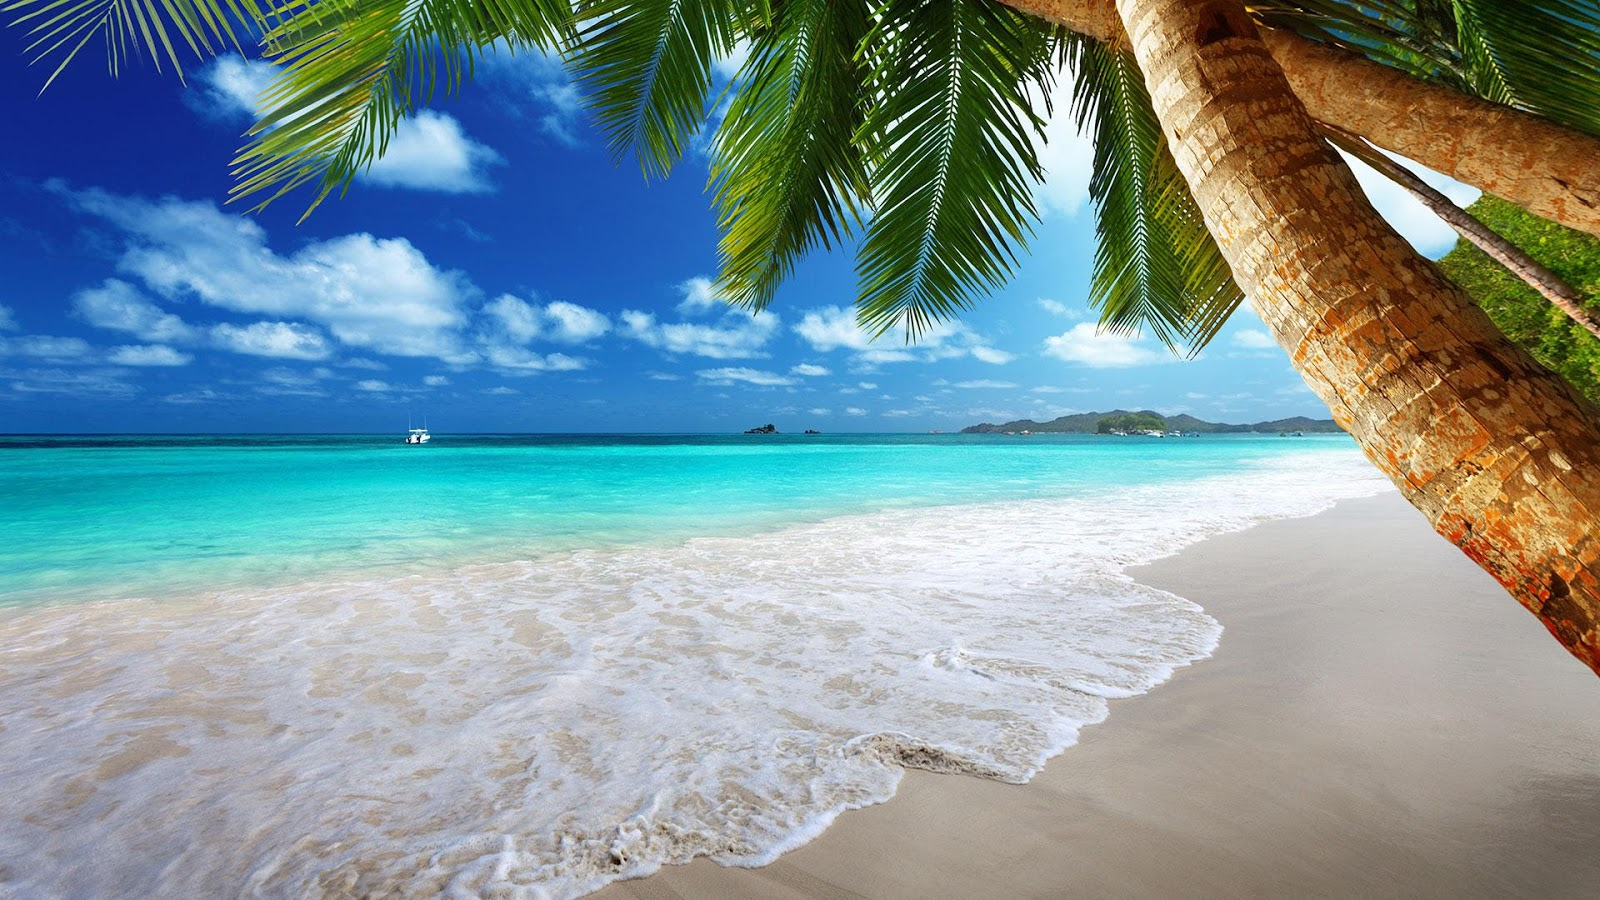 Beach Backgrounds on Wallpapers Vista